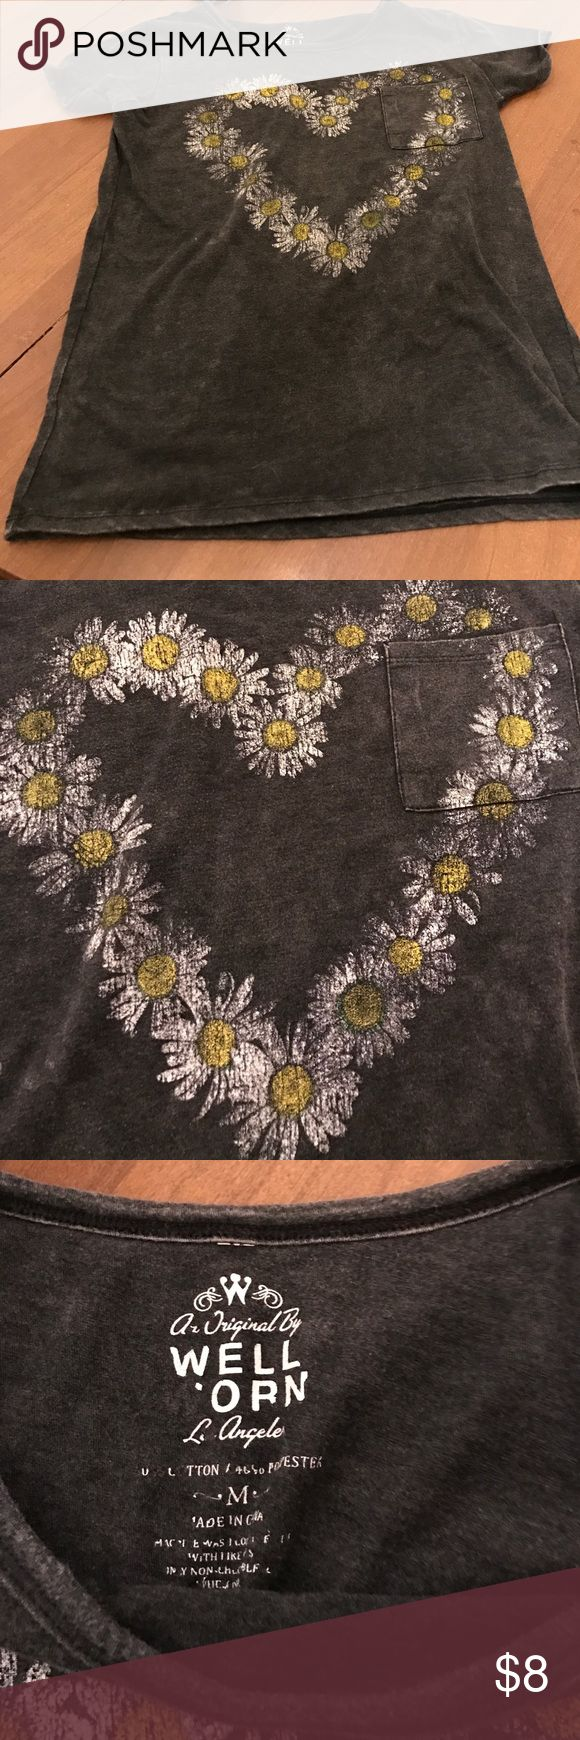 ~~~REPOSH~~~ Sunflower heart shirt Reposting this cute sunflower heart shirt. Too small for me unfortunately. Great condition. Has a faded look to it well worn Tops Tees - Short Sleeve